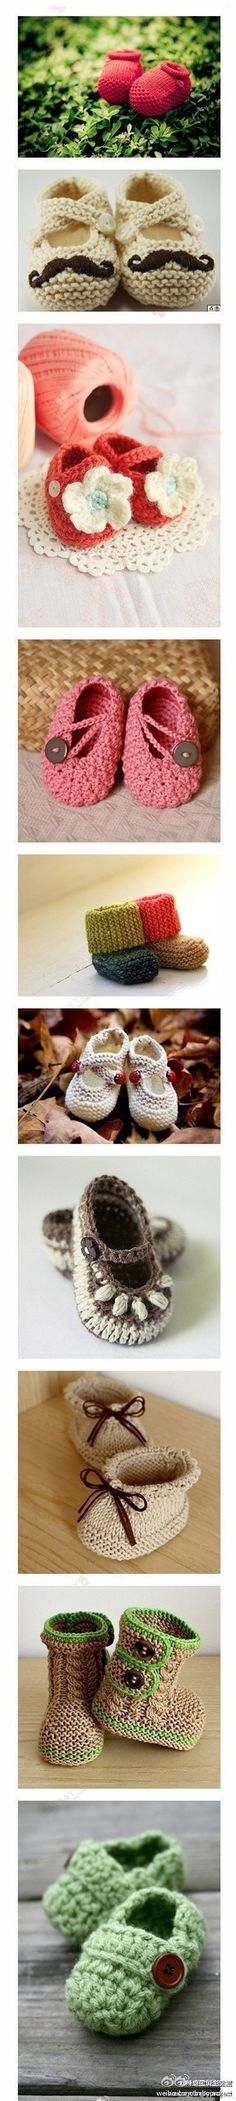 Soooo cute!! crotchet baby shoes ... would love to know the source for each of them ... any idea ?